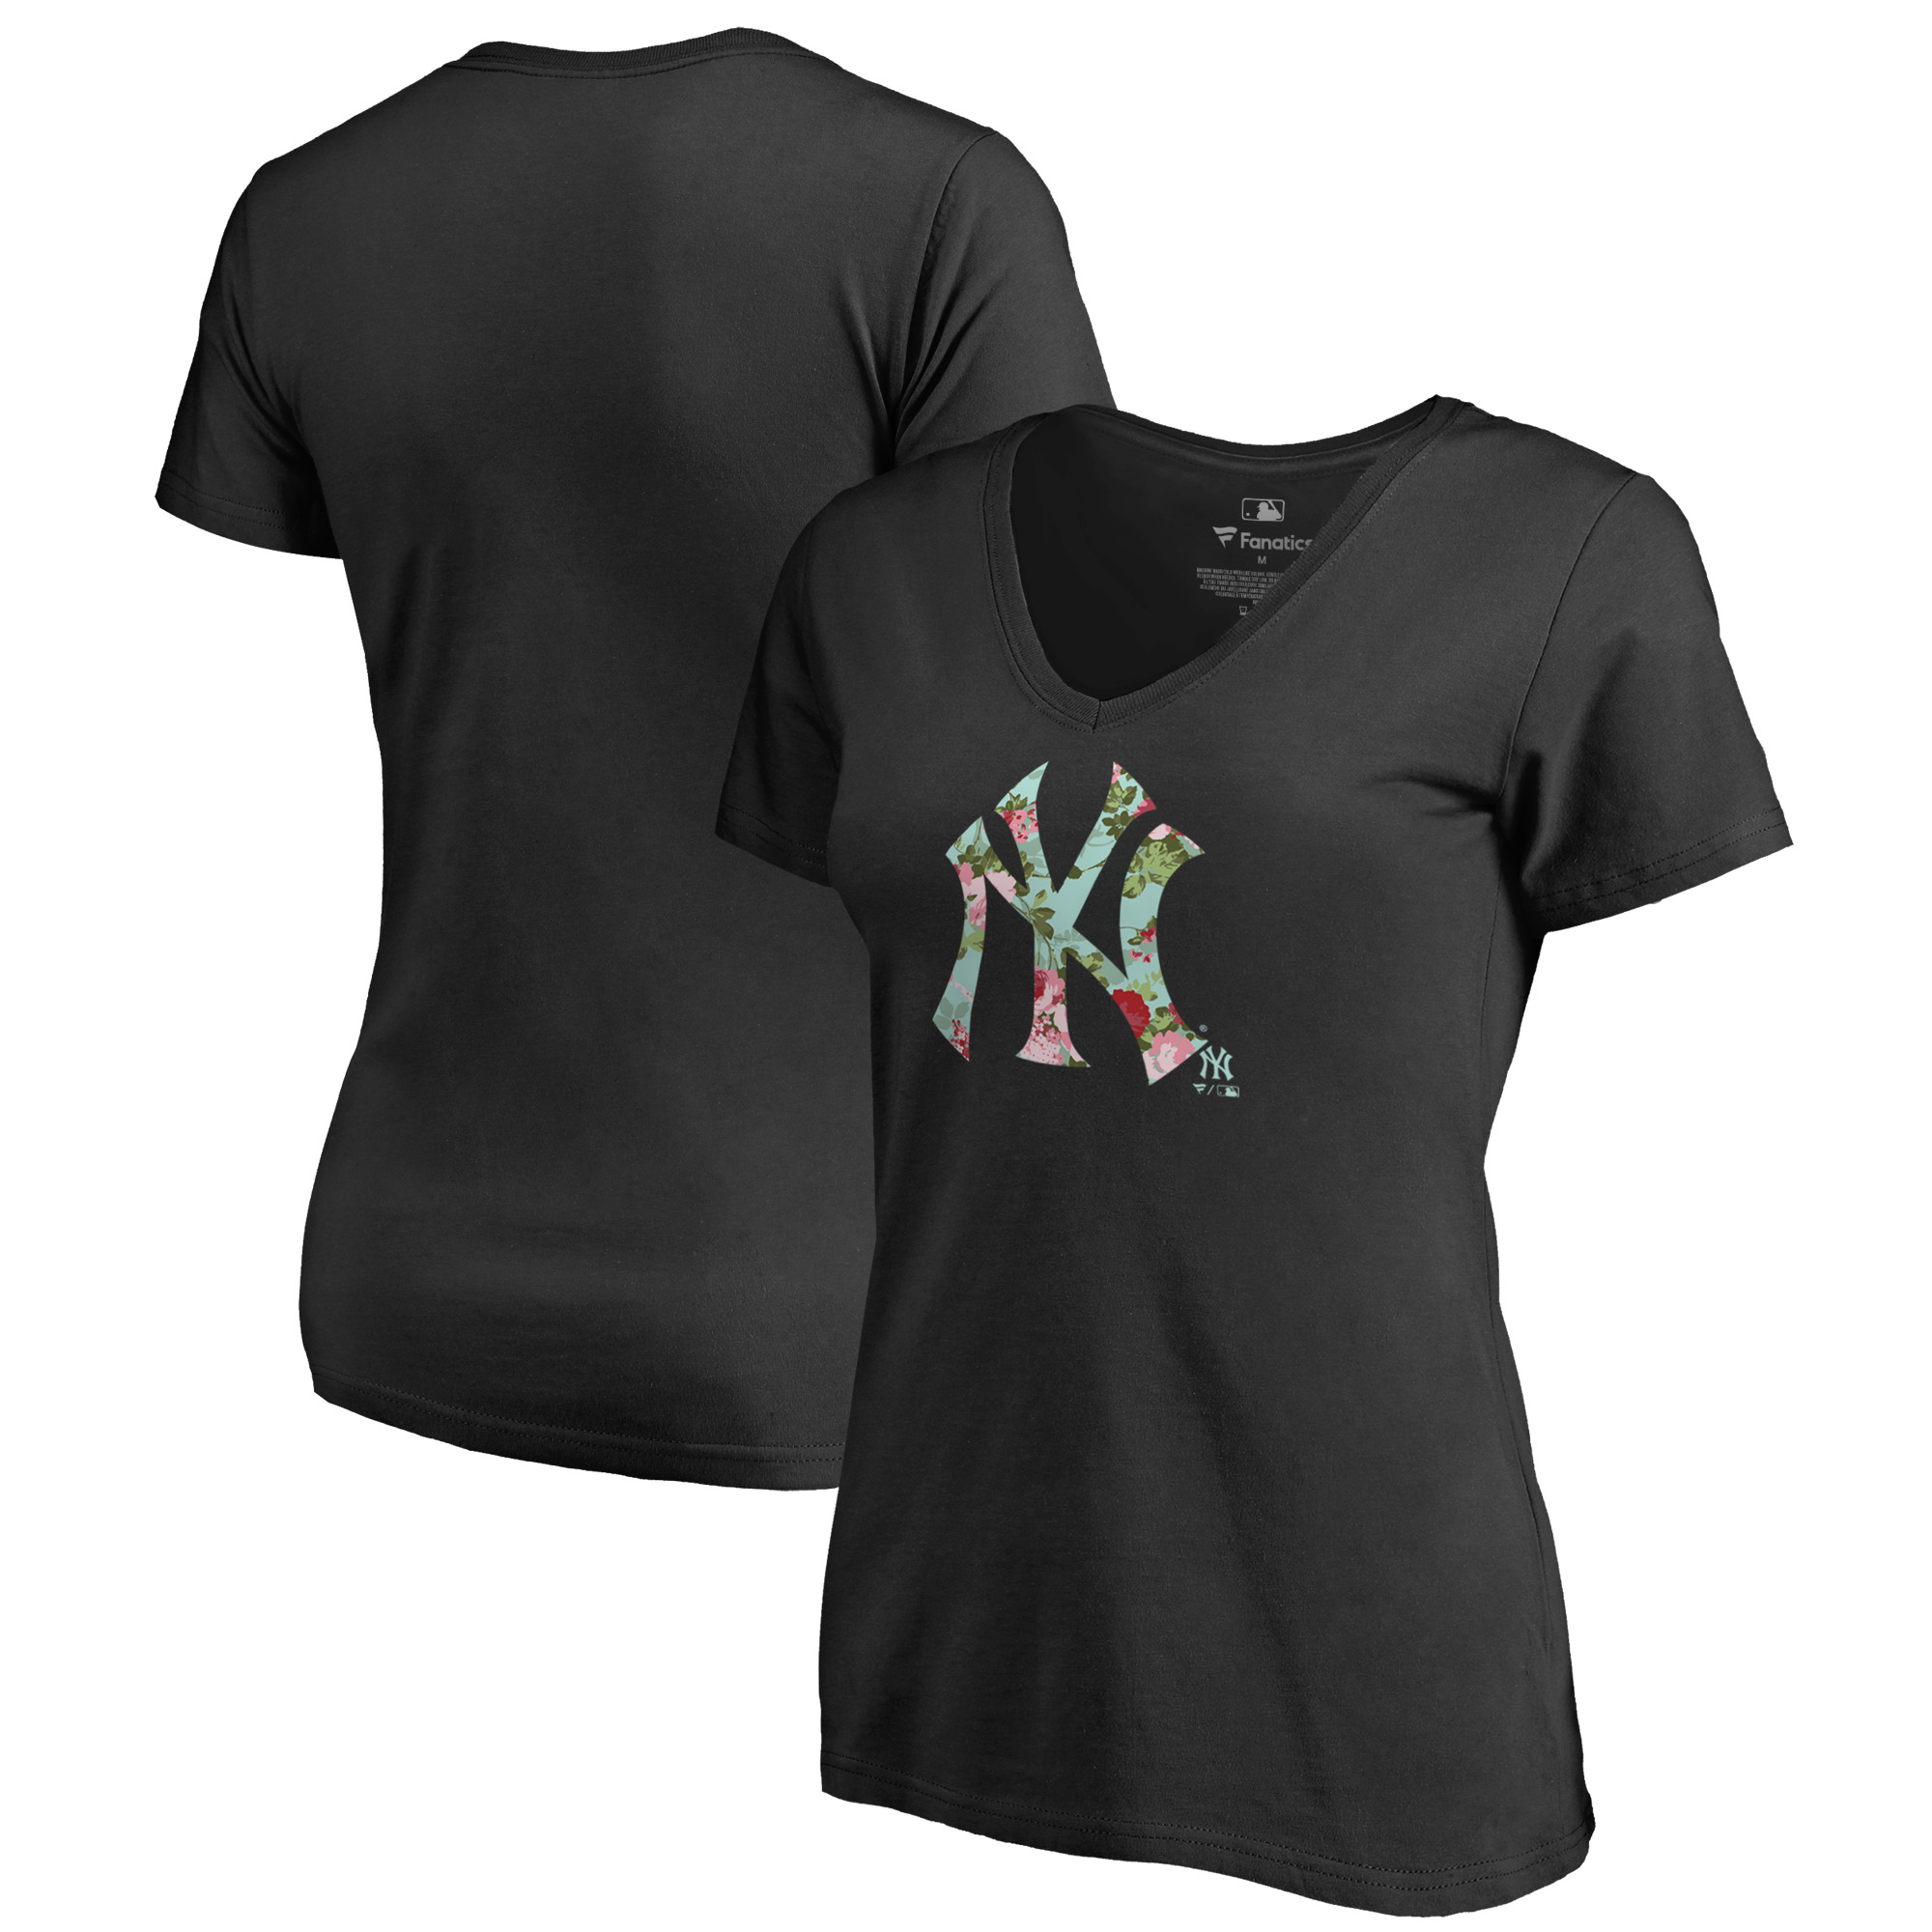 New York Yankees Fanatics Branded Women's Lovely V-Neck T-Shirt - Black